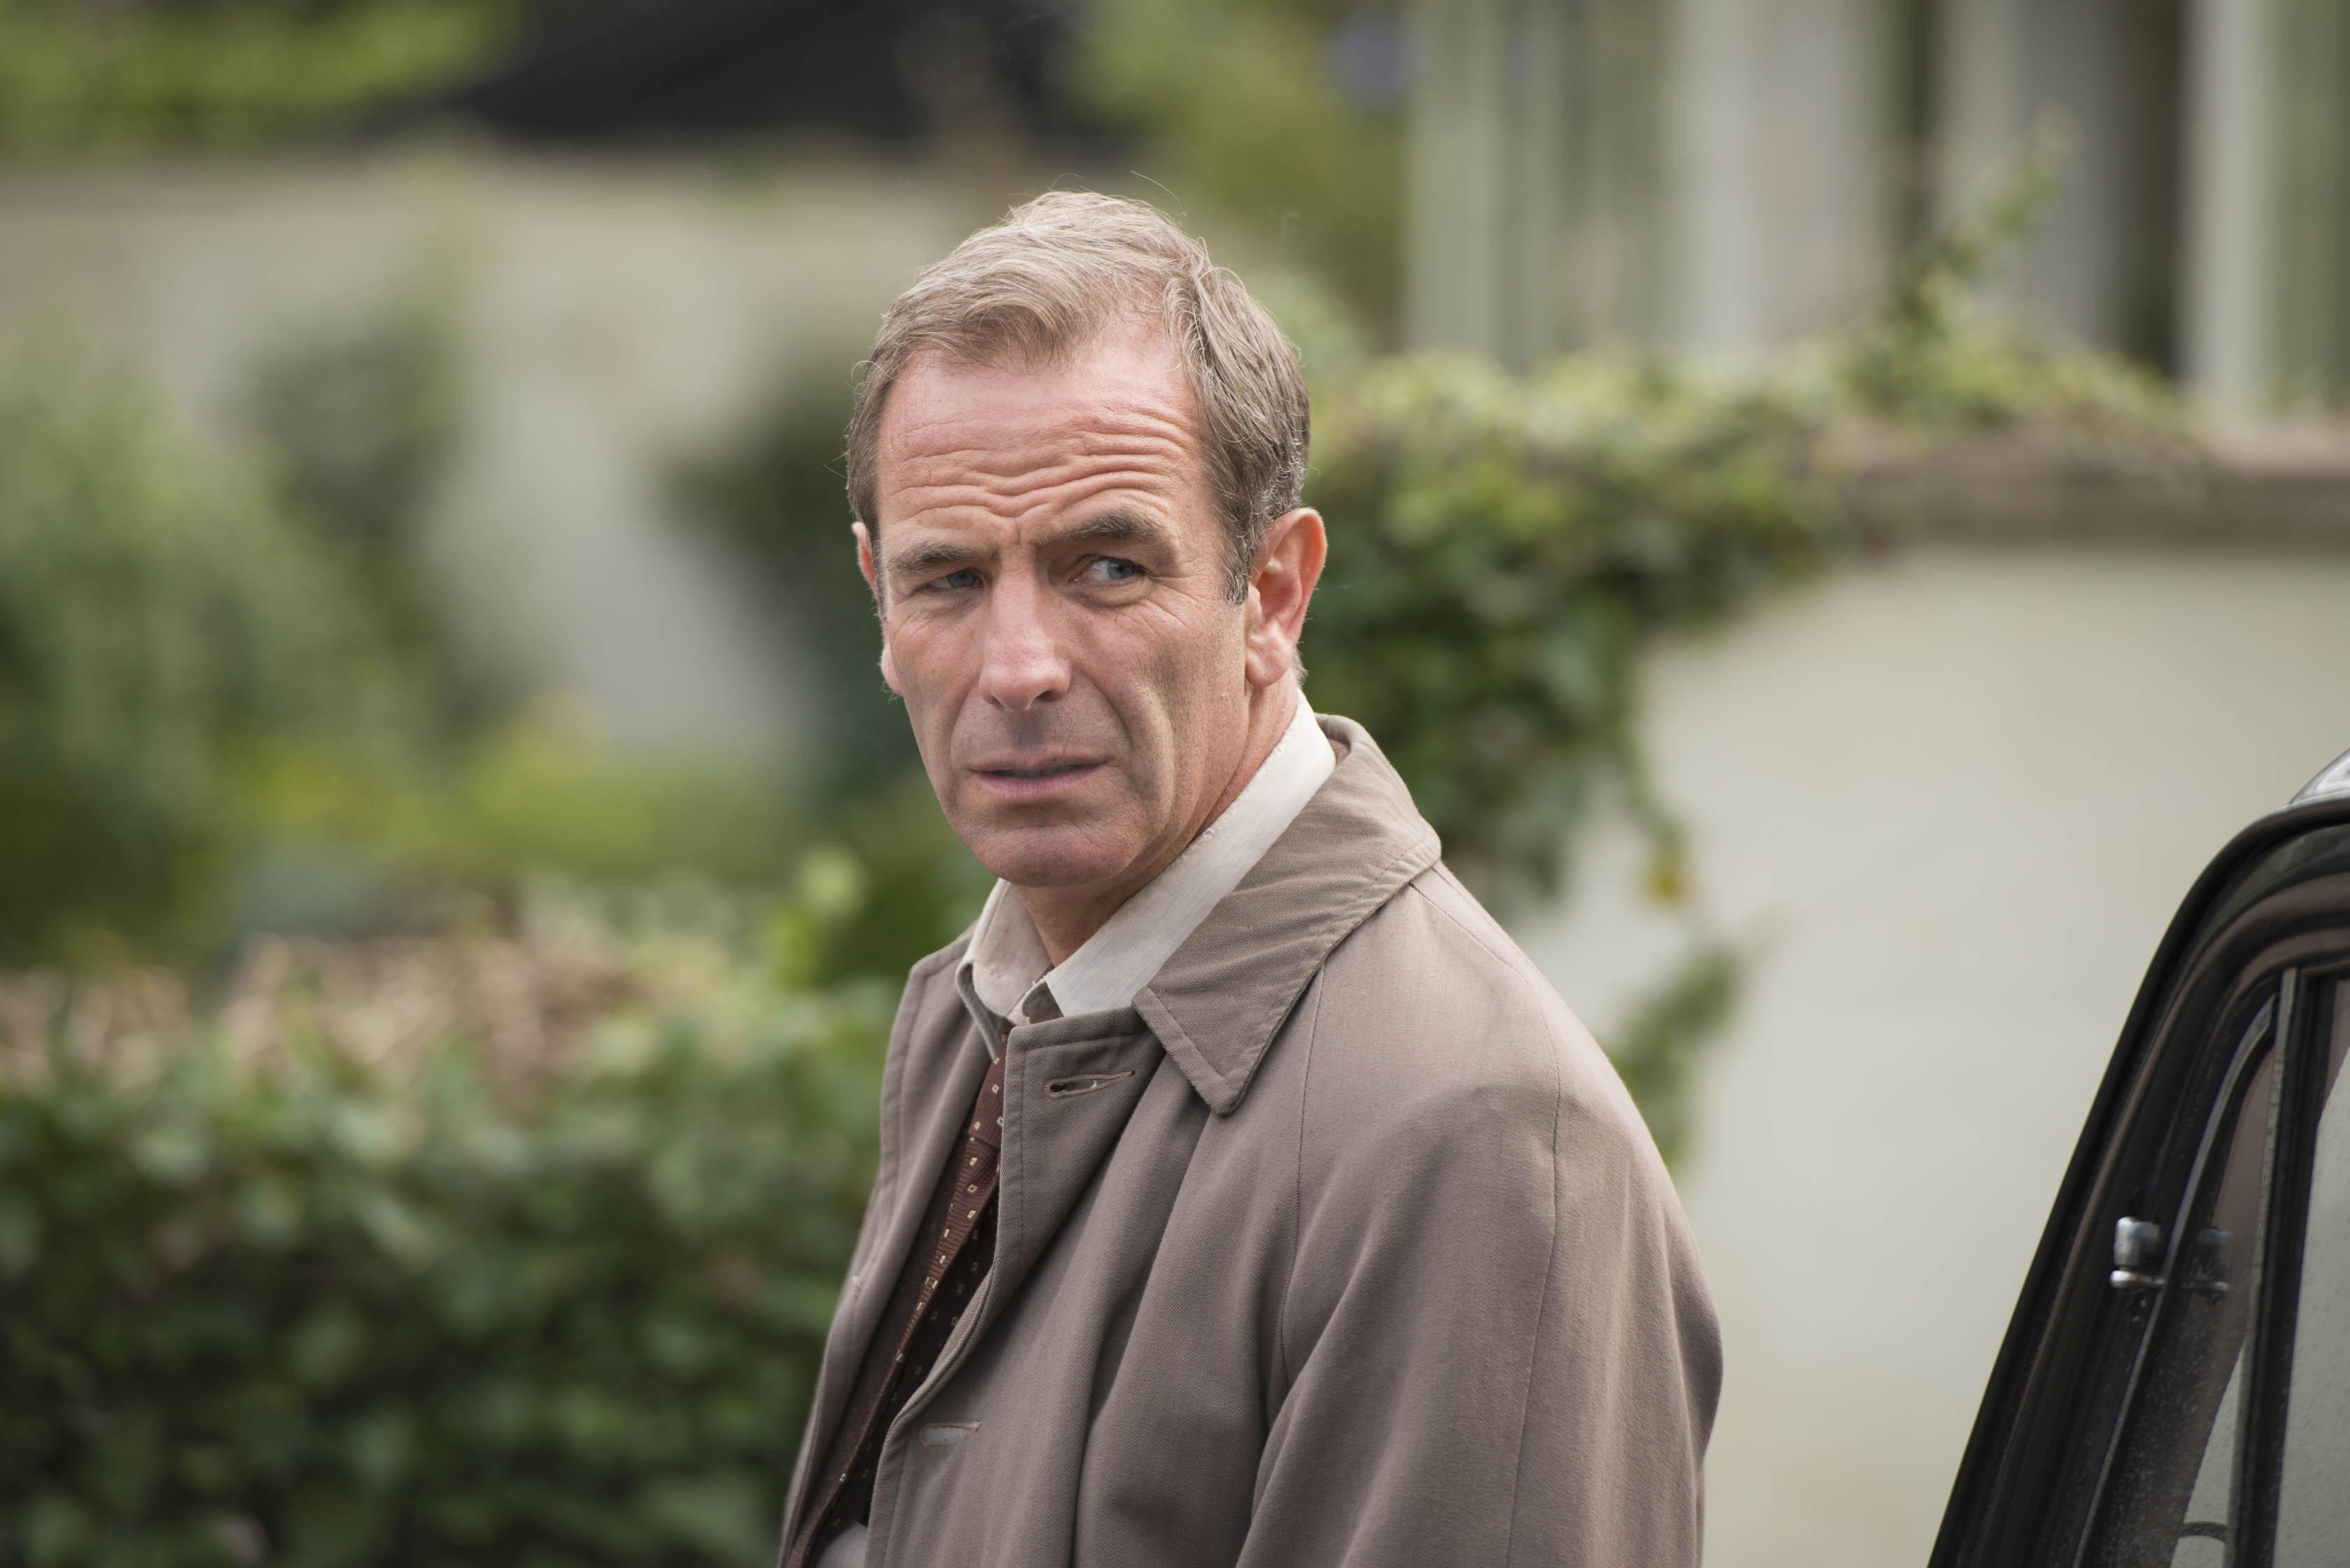 Vicar left questioning his faith after Grantchester's Robson Green 'ran off with his wife'